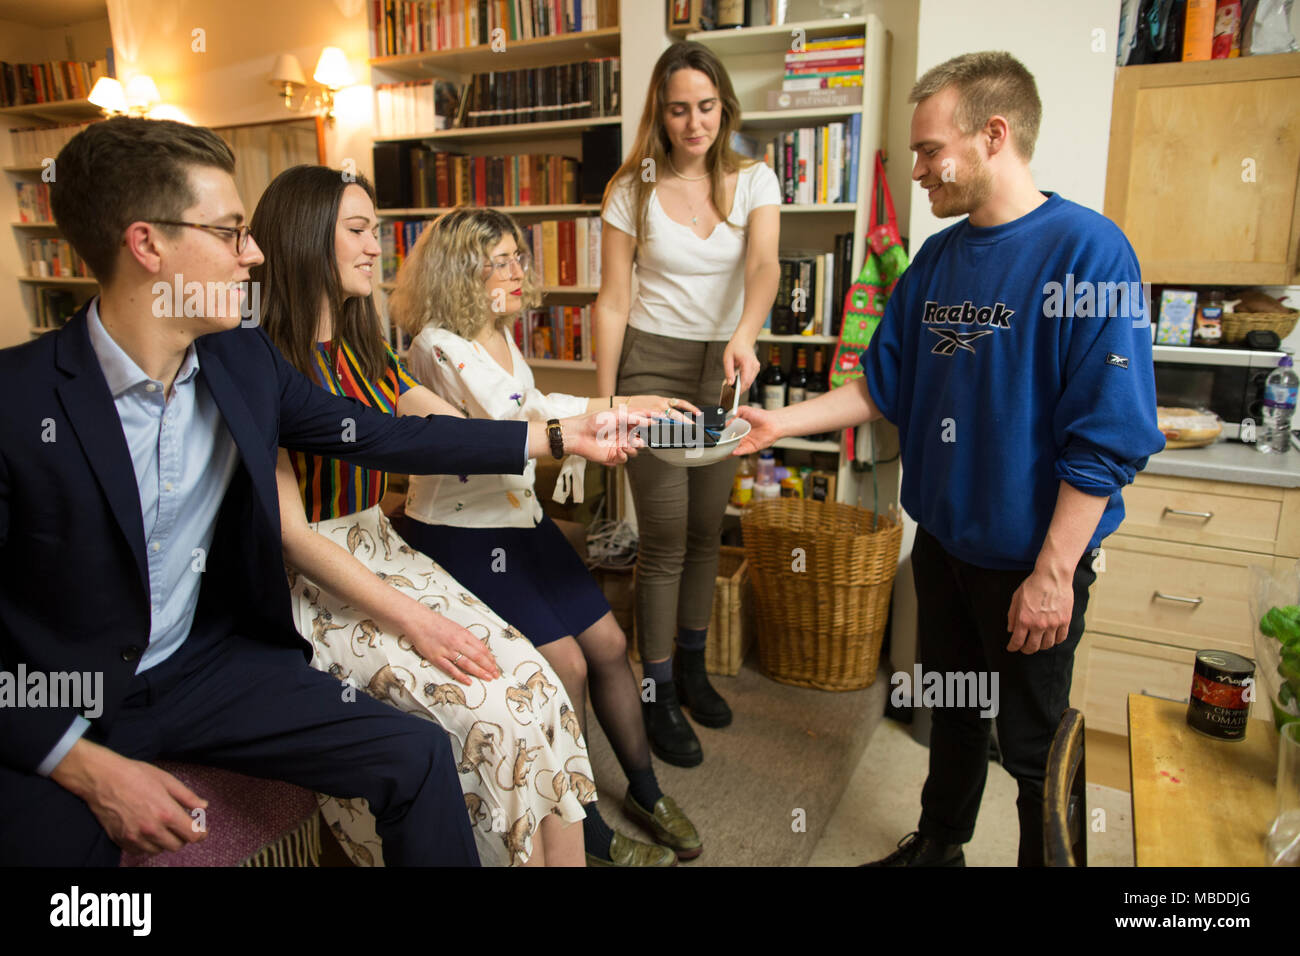 Young group of people attending a dinner party hand their smartphones into the host for a 'smartphone free' evening, London, UK - Stock Image